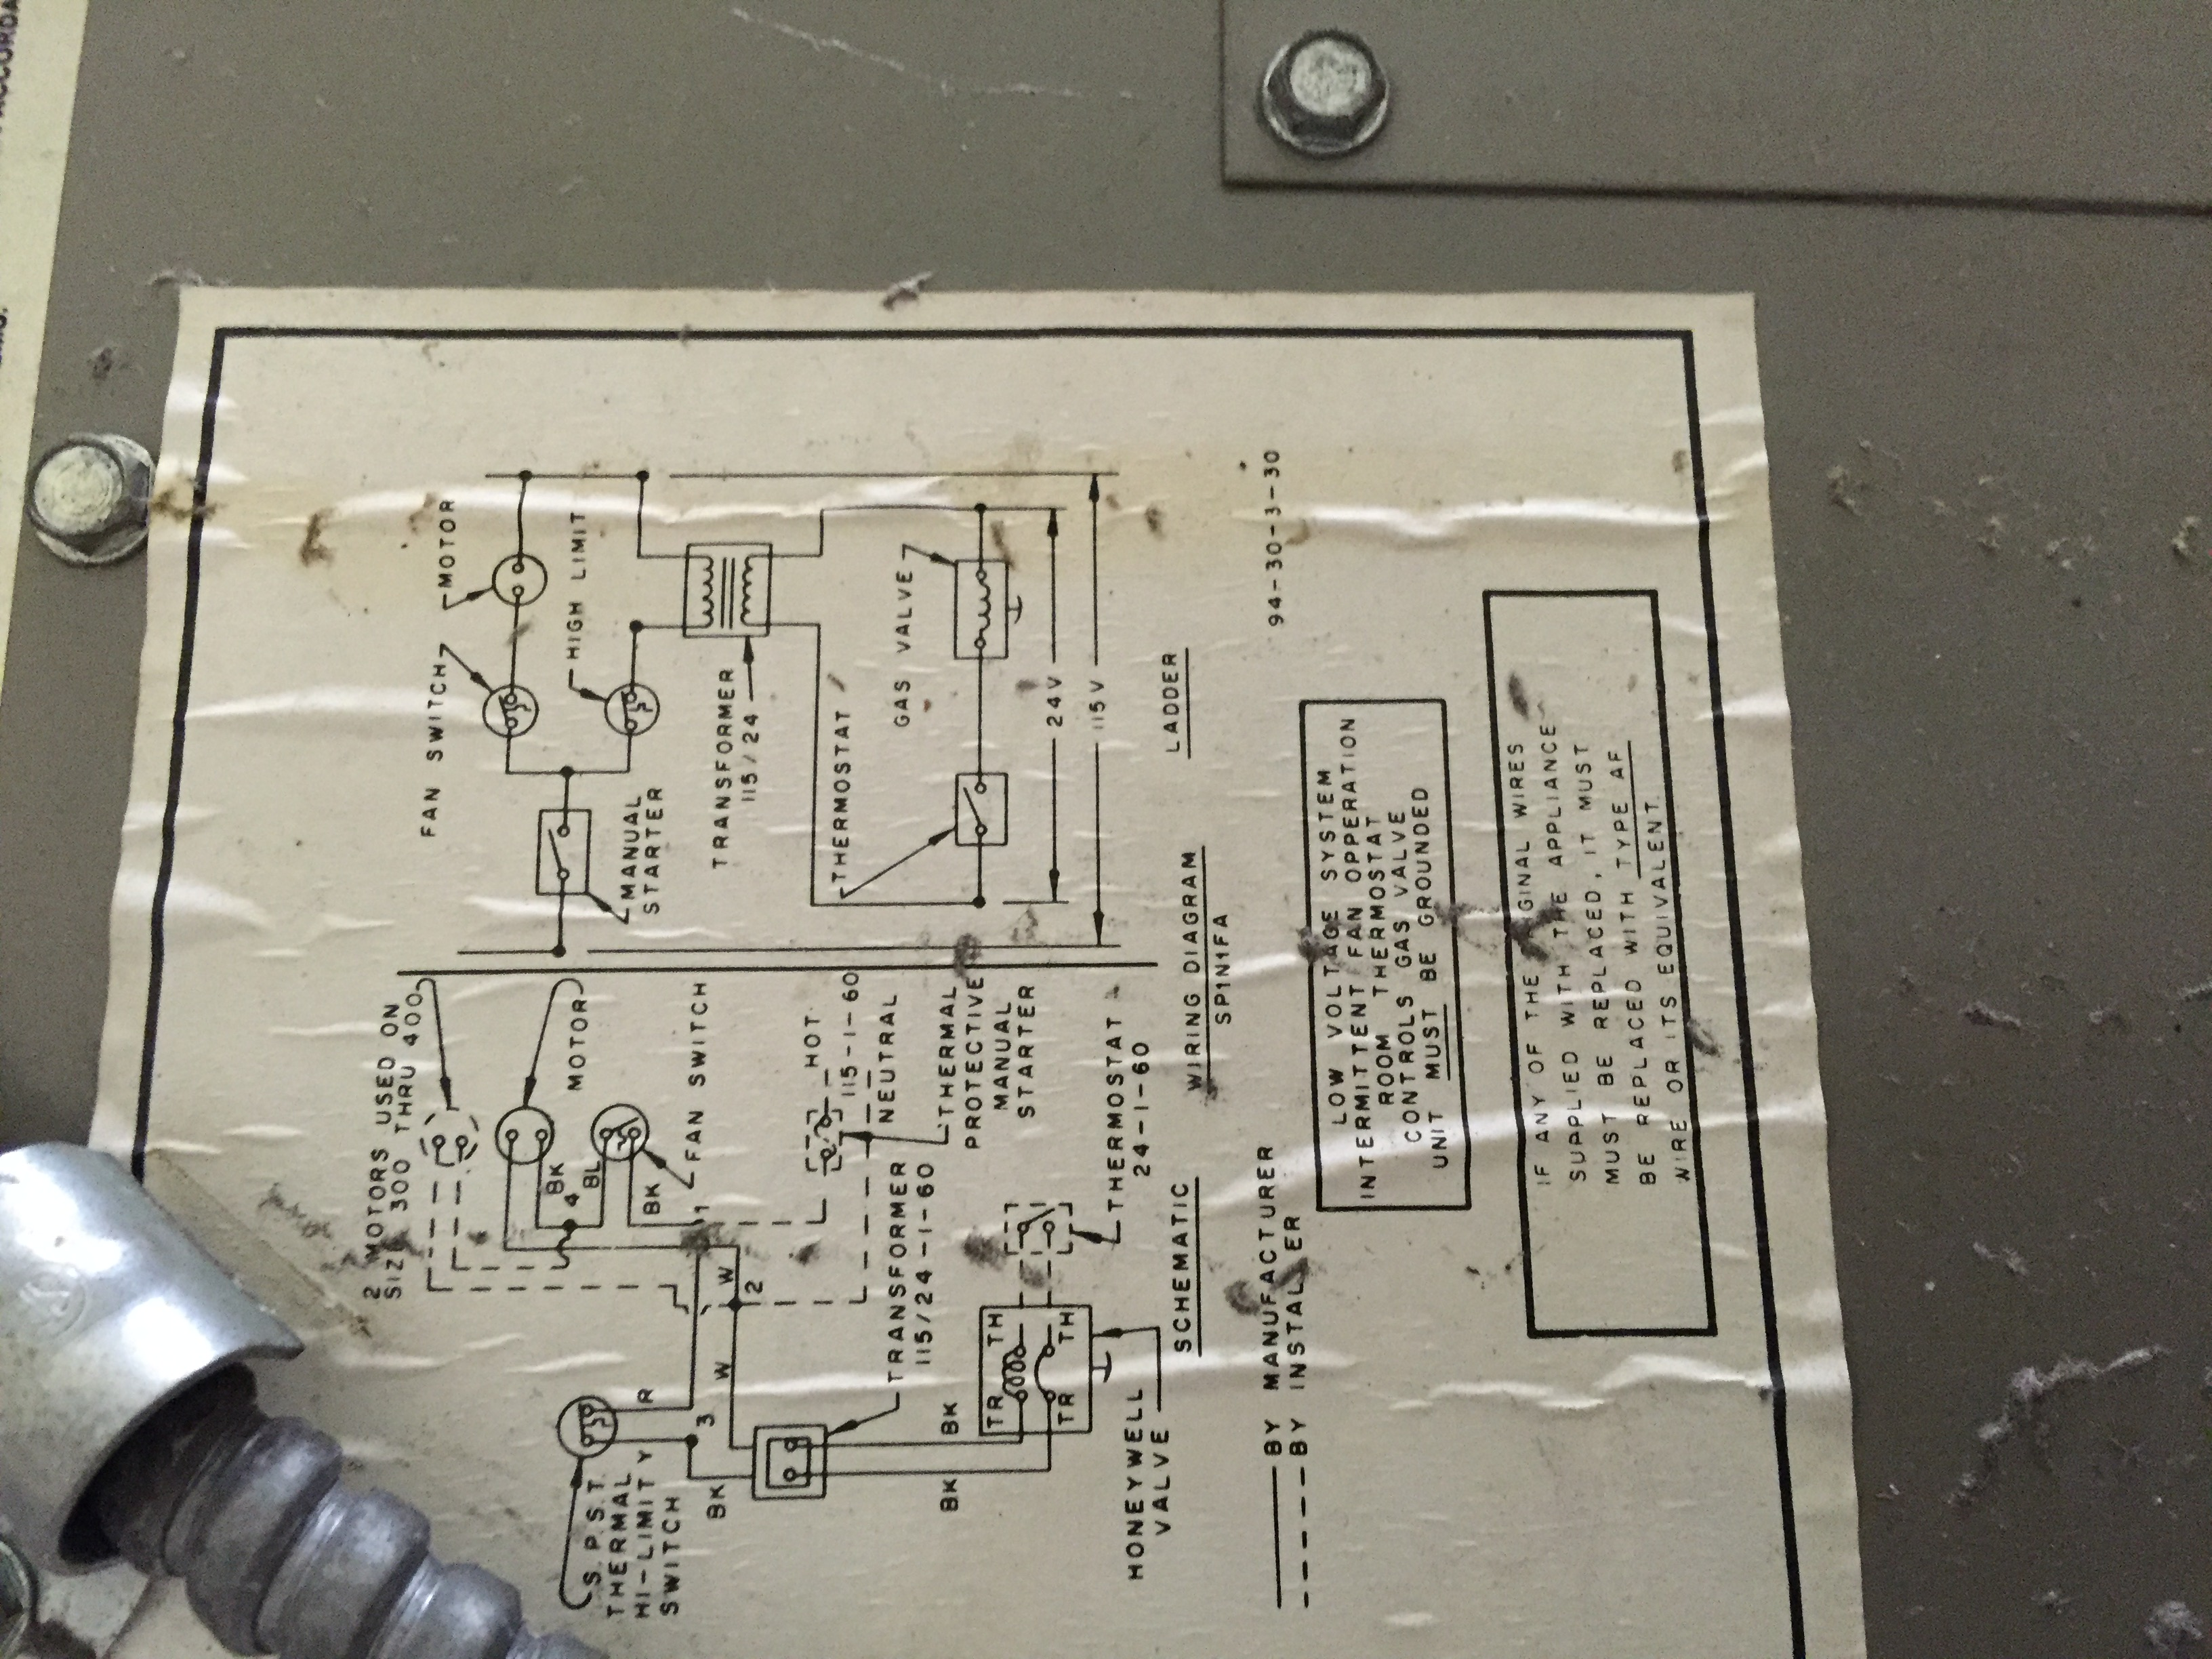 I Have 2 Janitrol Wh 100 Heaters Not Used Them For 8 Years Blower Wiring Diagram Img 0434